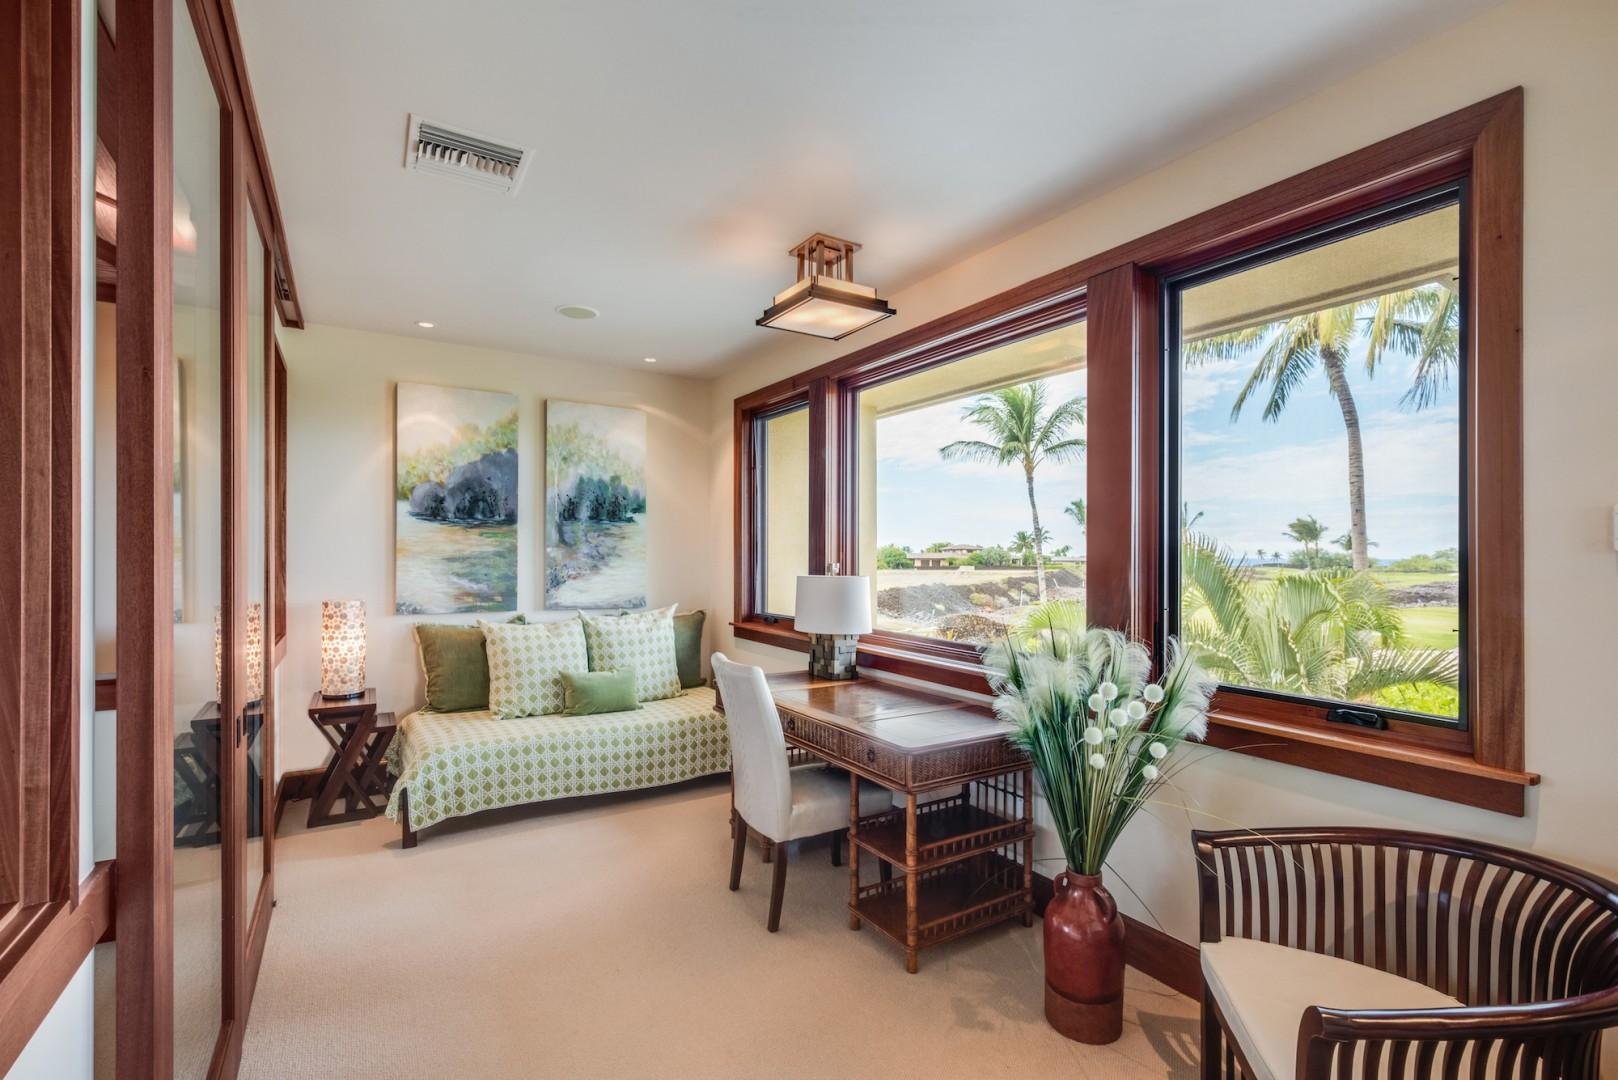 Office Space w/ Twin Daybed and Expansive Golf Course View Attached to Upstairs Master Bedroom